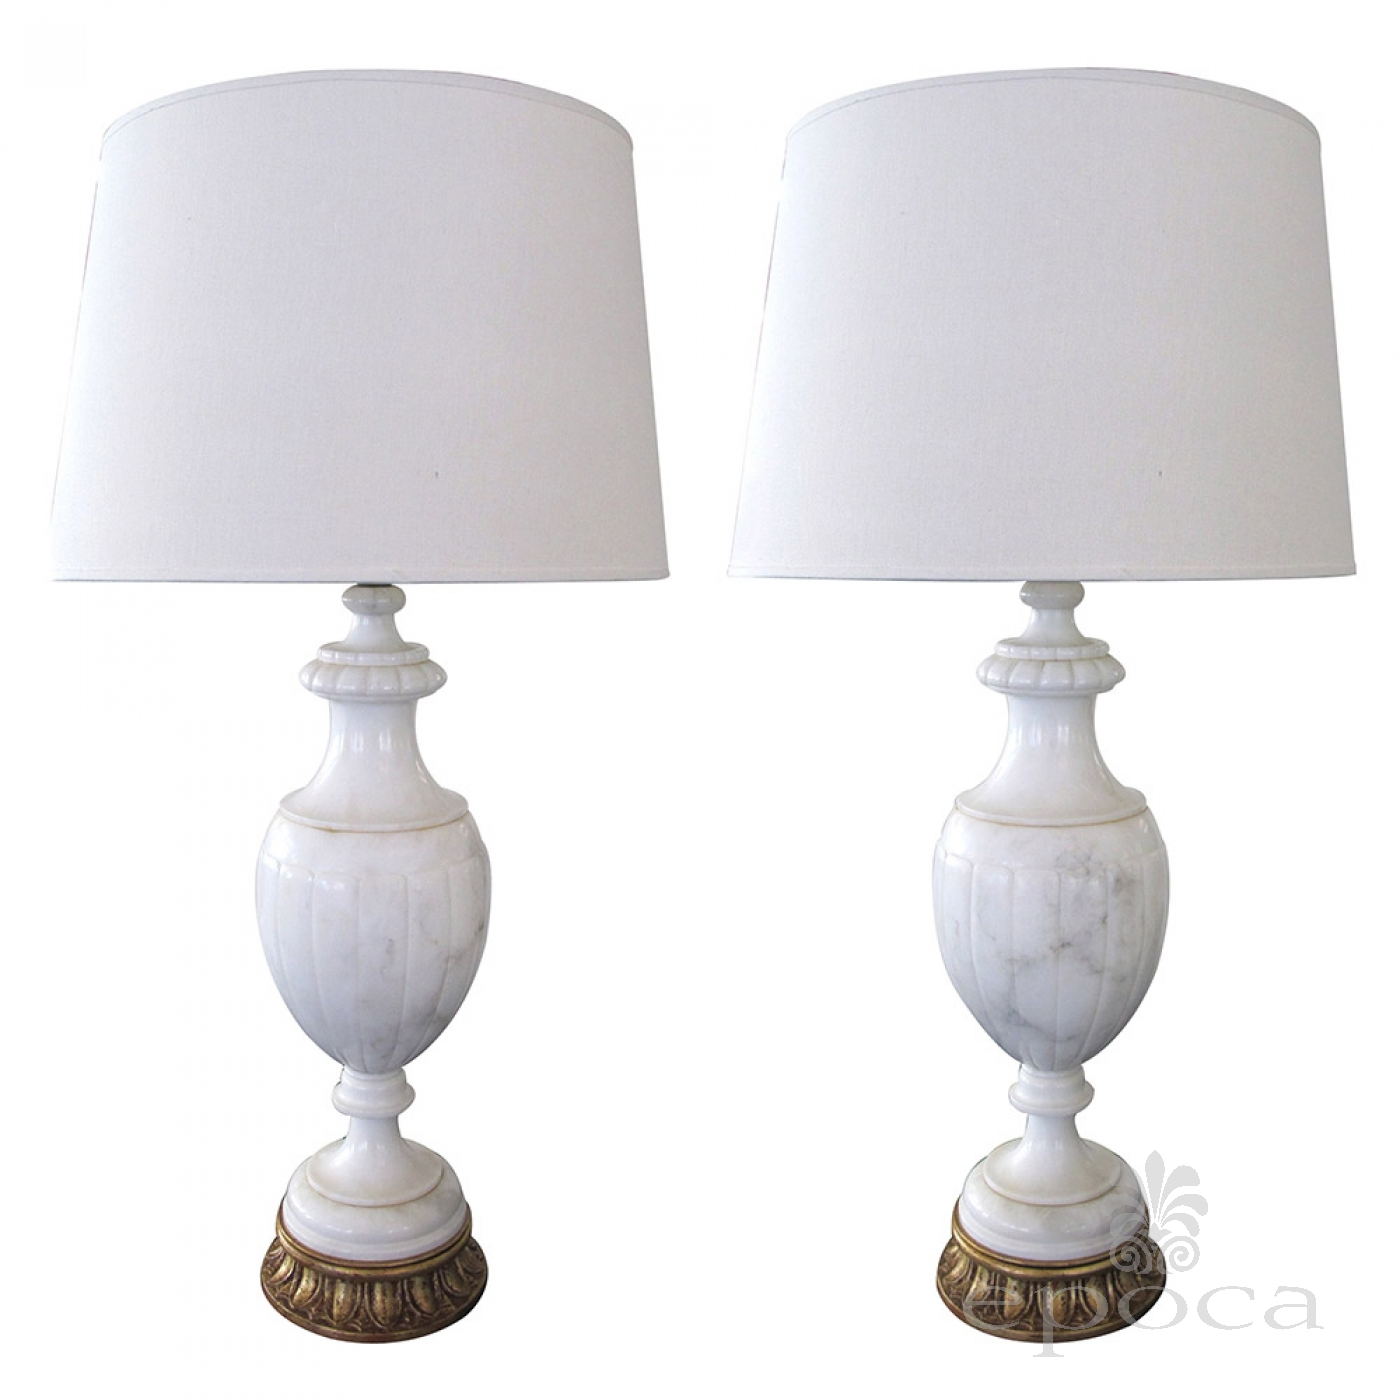 Superb A Large Scaled And Elegant Pair Of Italian Urn Form Carrera Marble Lamps